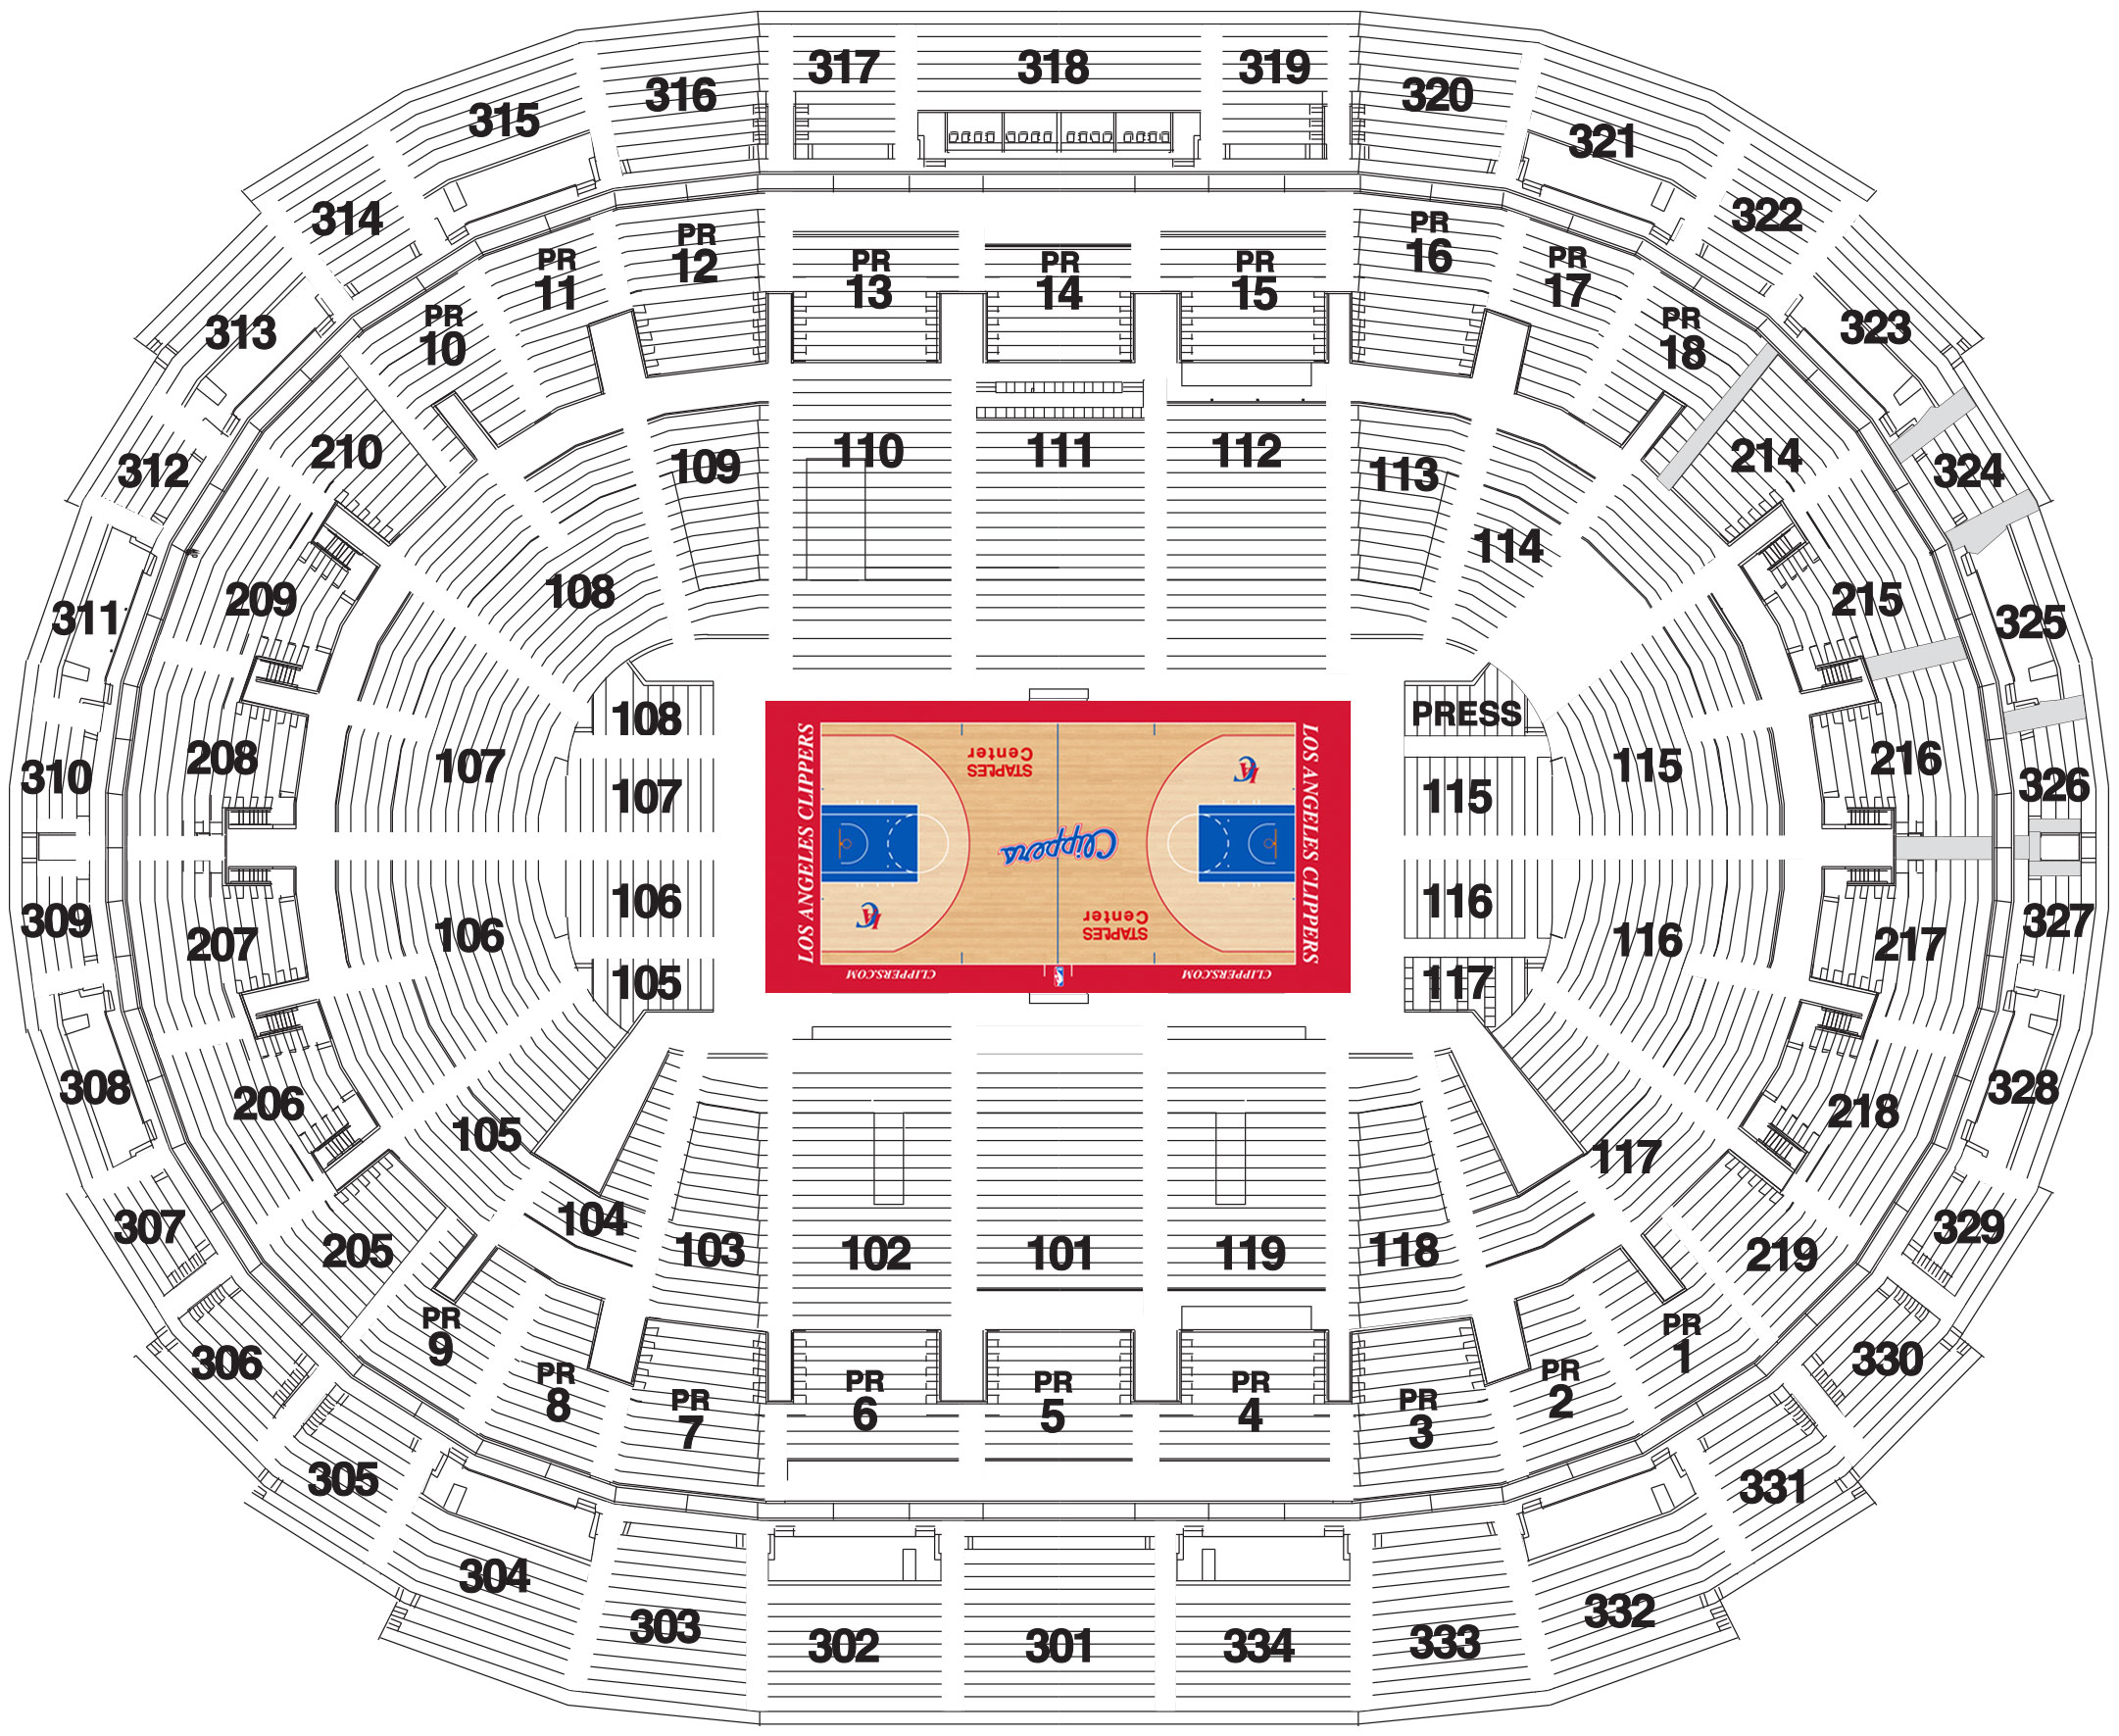 staples center clippers seating chart